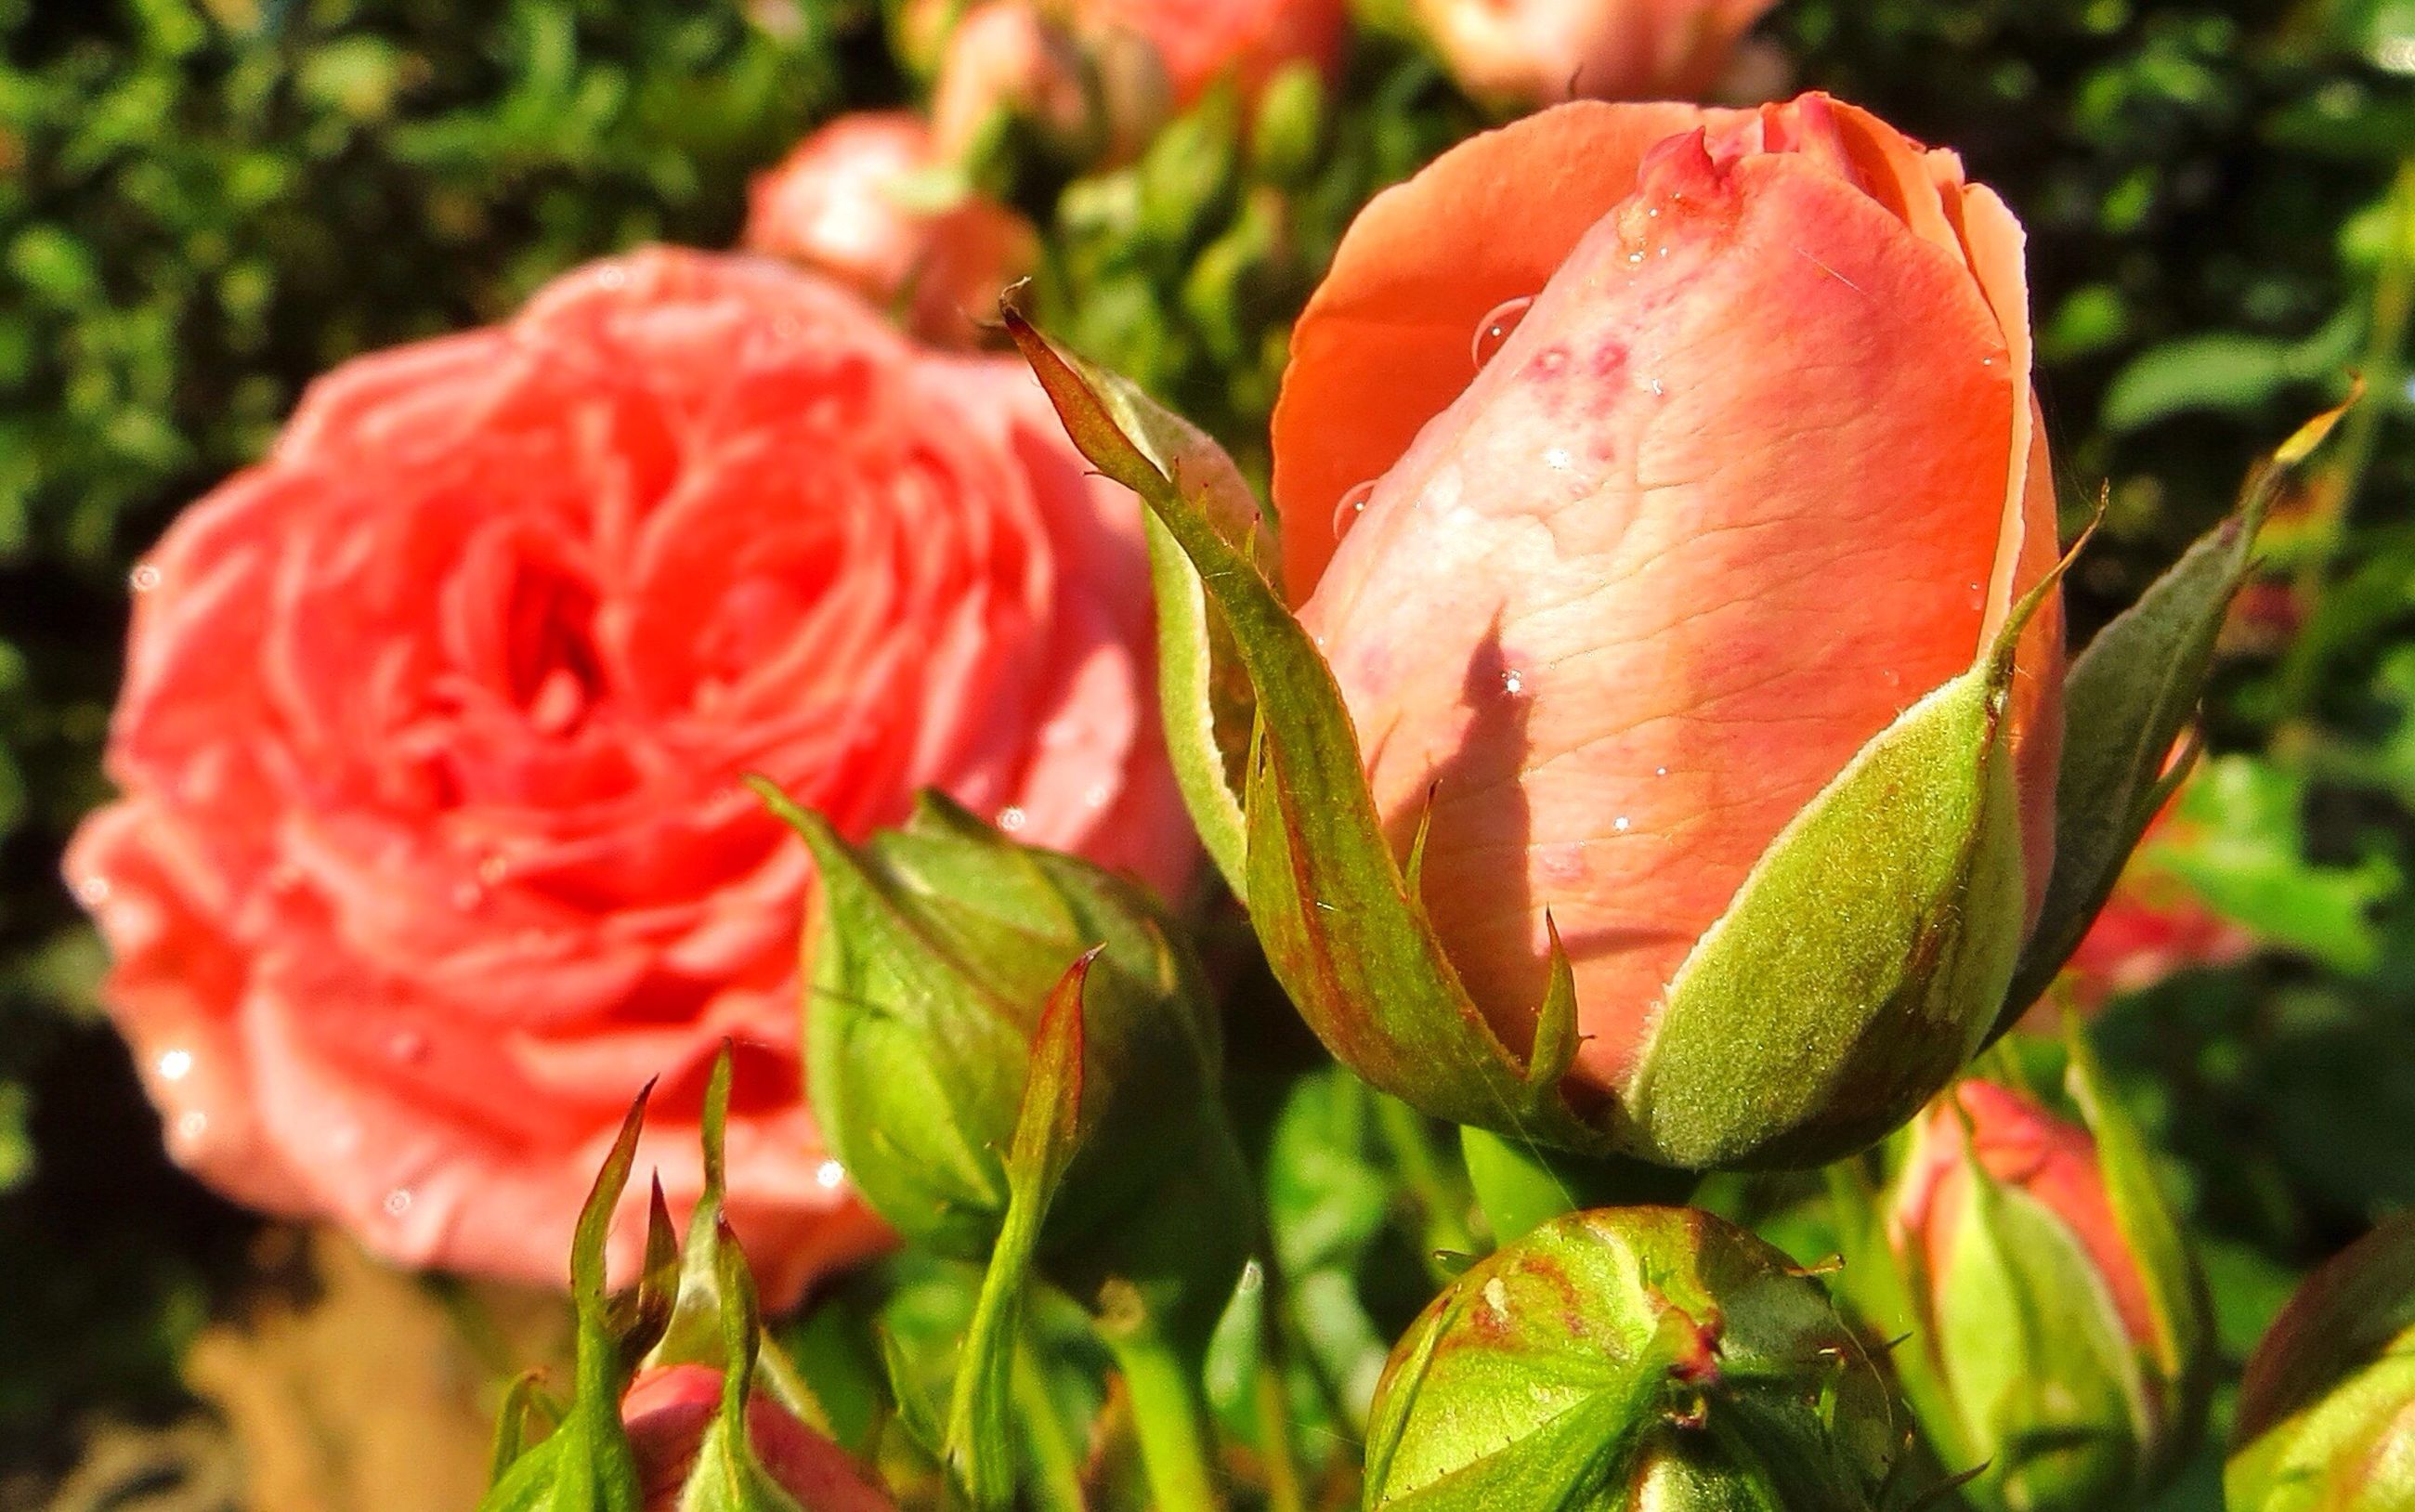 flower, growth, freshness, fragility, plant, petal, close-up, beauty in nature, focus on foreground, nature, bud, leaf, flower head, red, blooming, pink color, stem, new life, green color, beginnings, day, in bloom, outdoors, no people, selective focus, botany, growing, blossom, tranquility